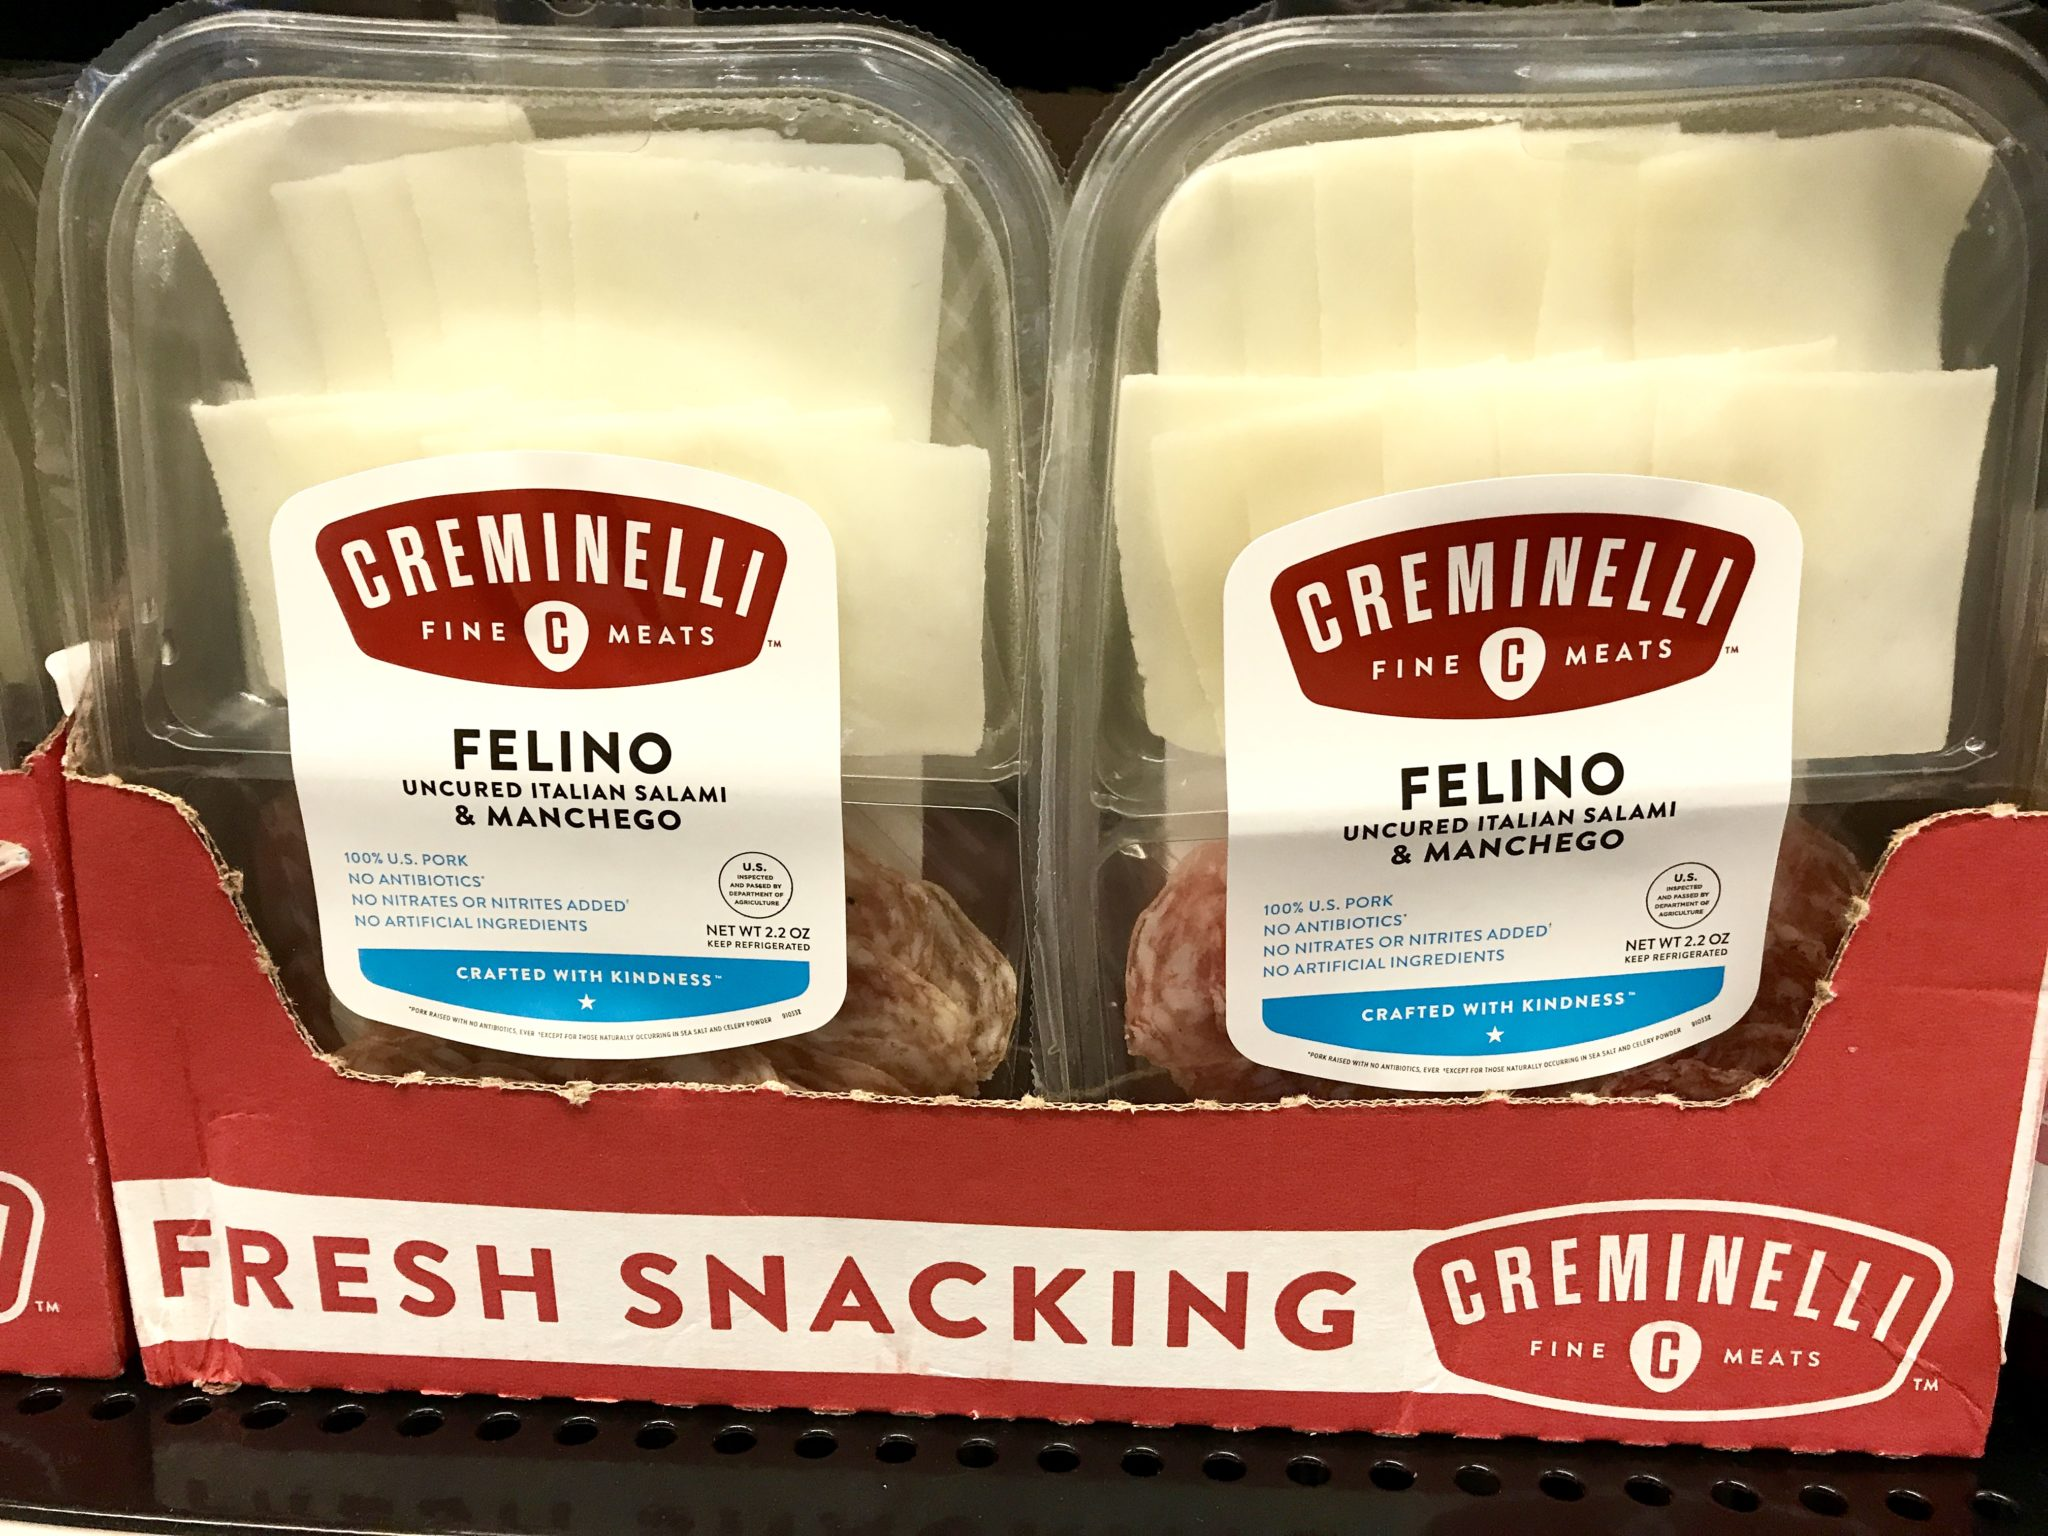 Snack Trays from Creminelli